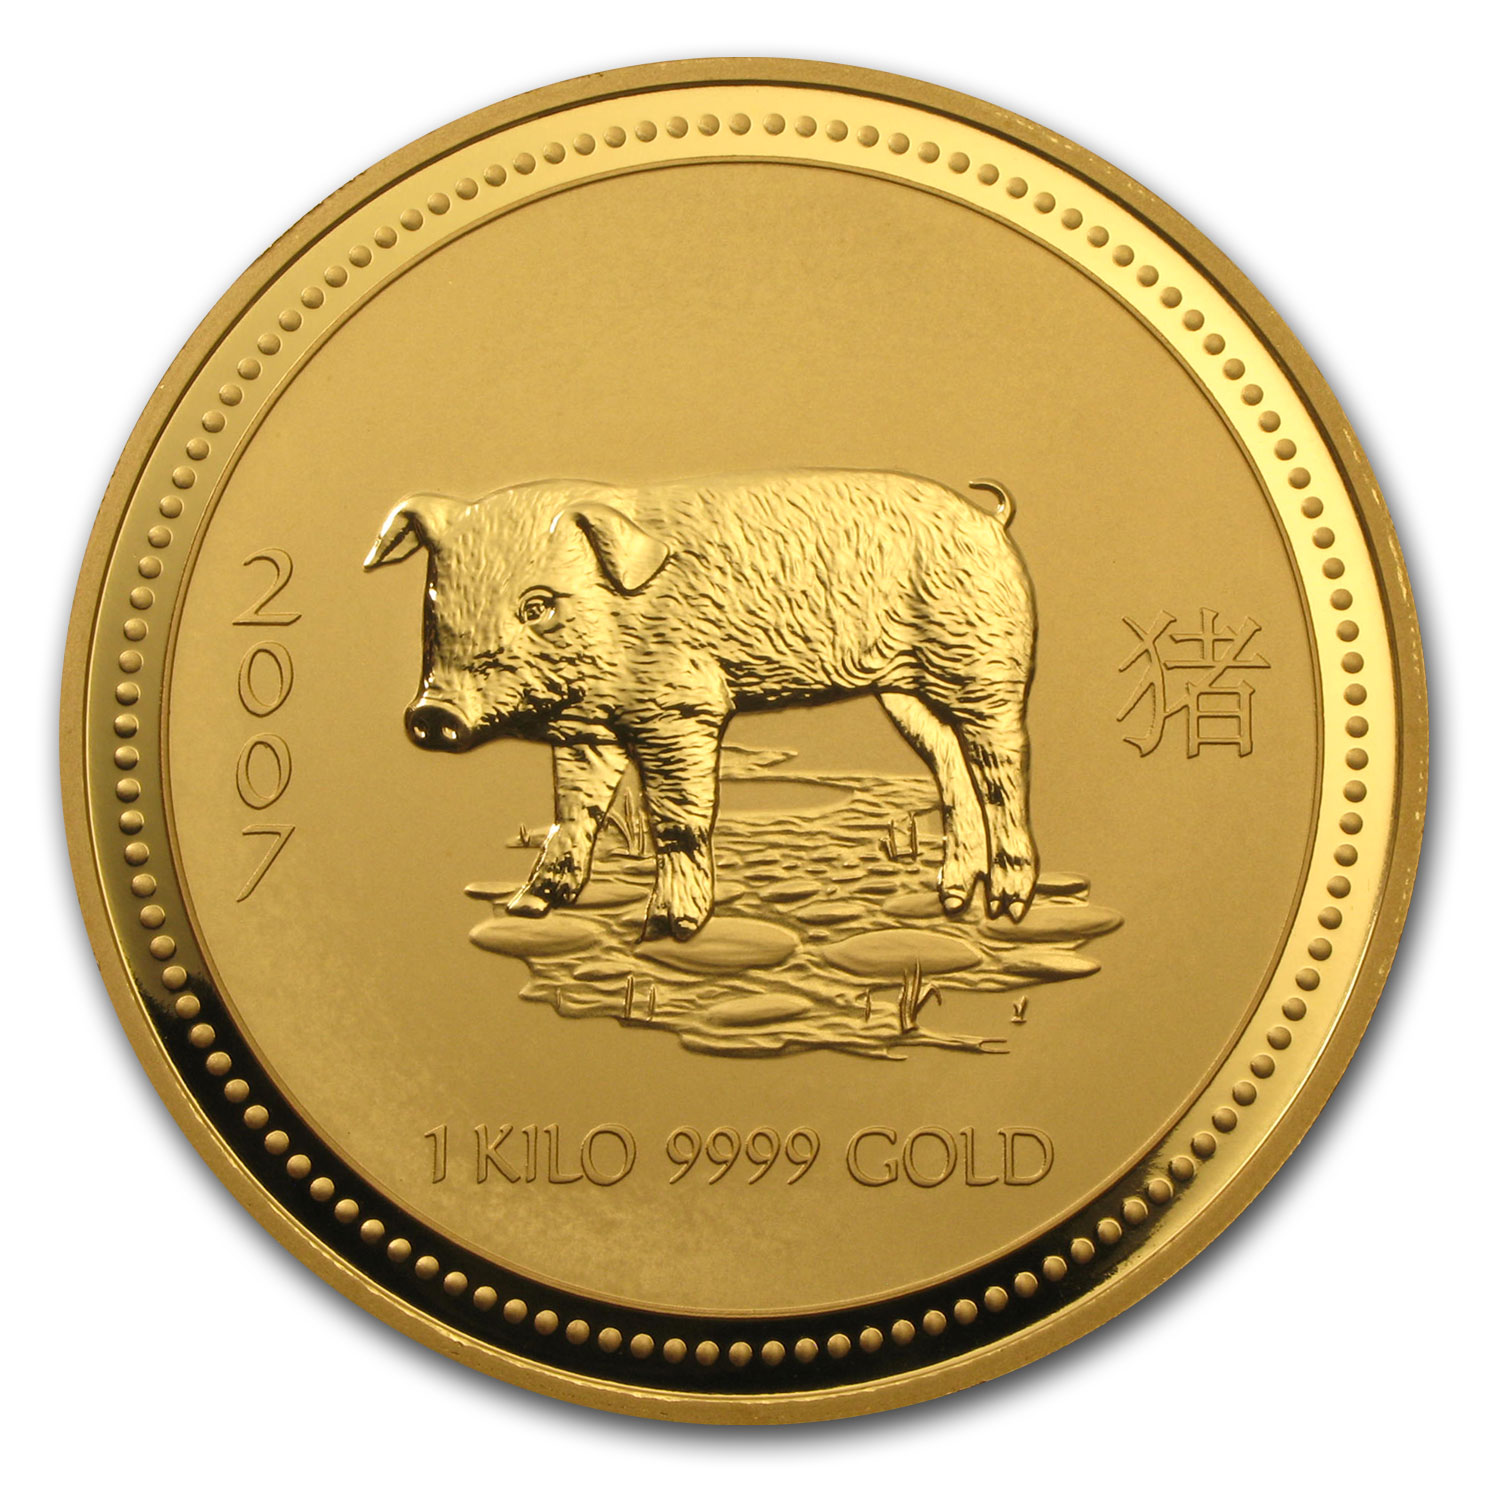 2007 1 kilo Gold Lunar Year of the Pig BU (Series I)